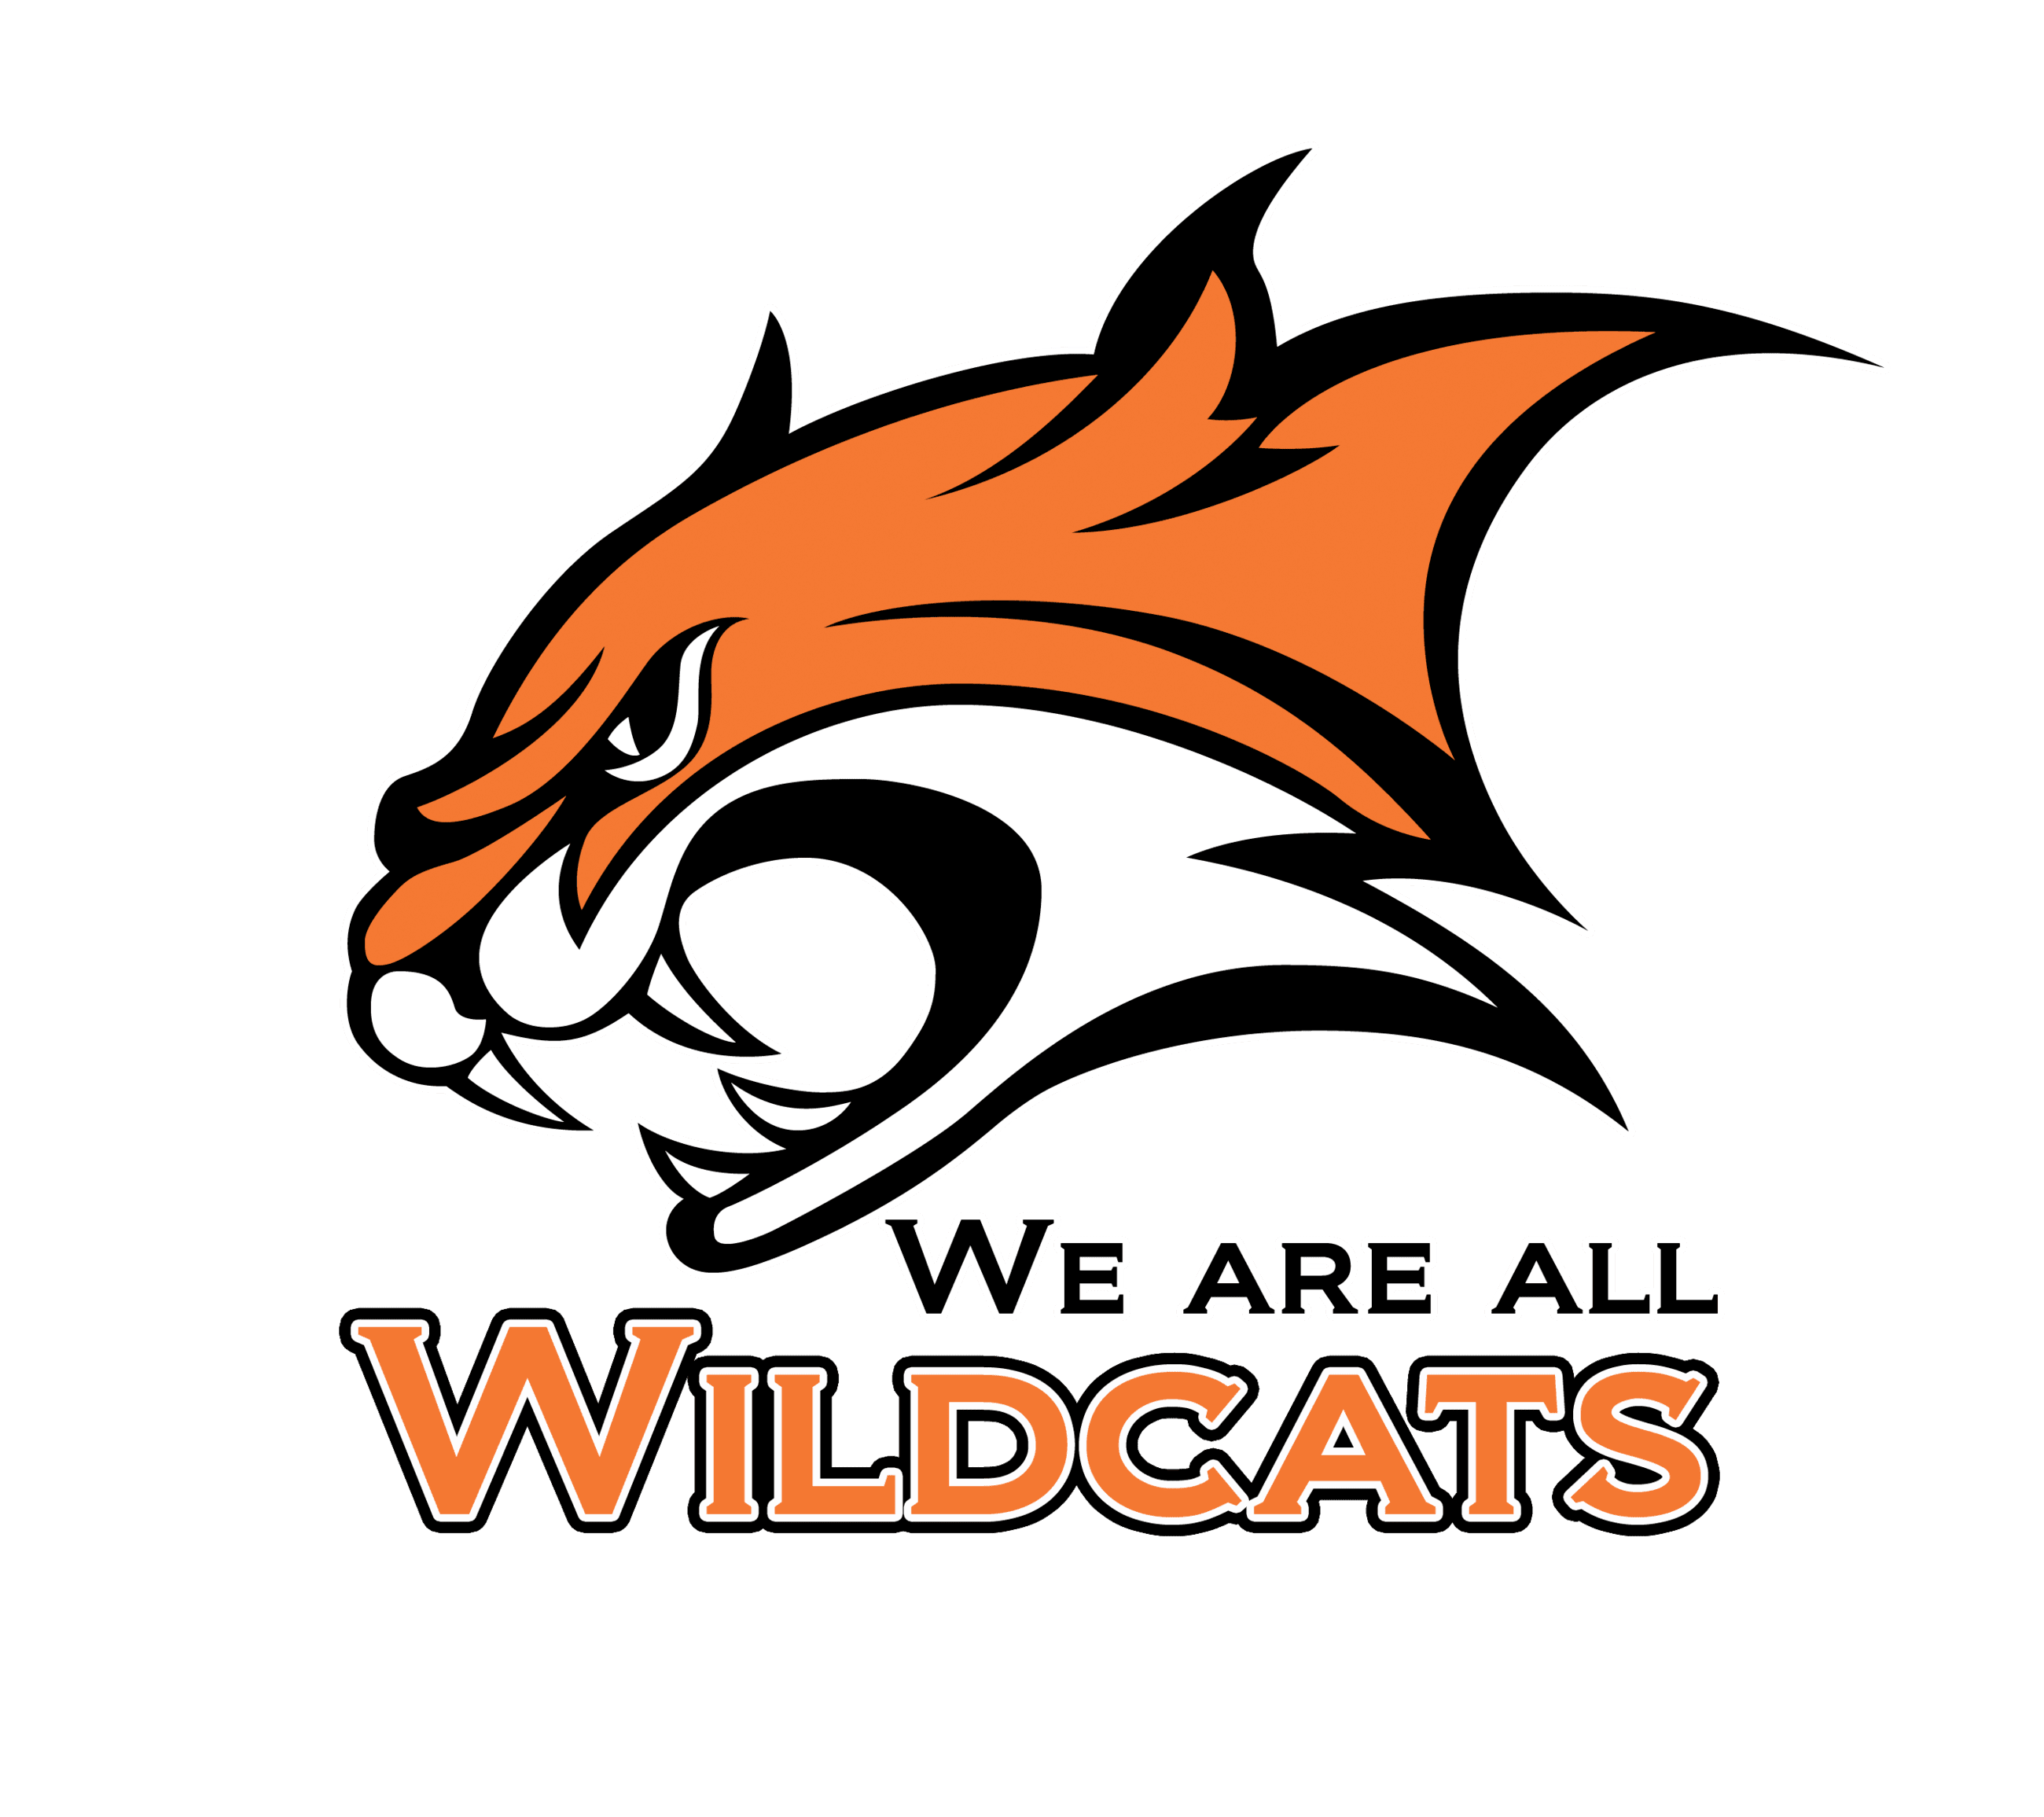 We Are All Wildcats